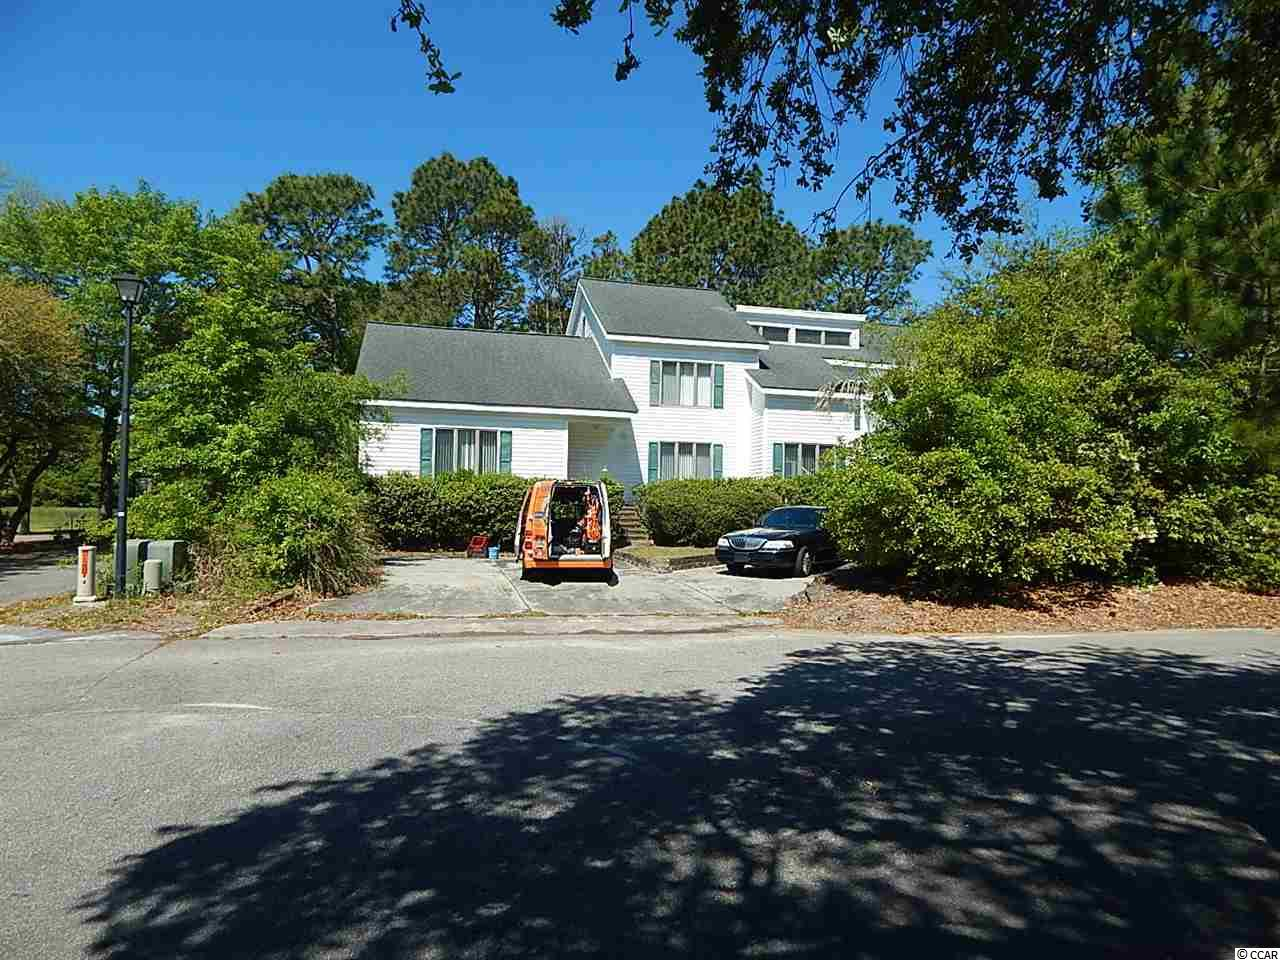 HUGE...HUGE 6 BEDROOM, 3.5 BATH HOME WITHIN 10 MINUTES OF THE BEACH IN SURFSIDE, SC!!!....BANK'S LOSS IS YOUR GAIN ON THIS SHORT SALE....INVESTOR HANDYMAN SPECIAL....MAKE AN OFFER TODAY BEFORE IT IS S-O-L-D!